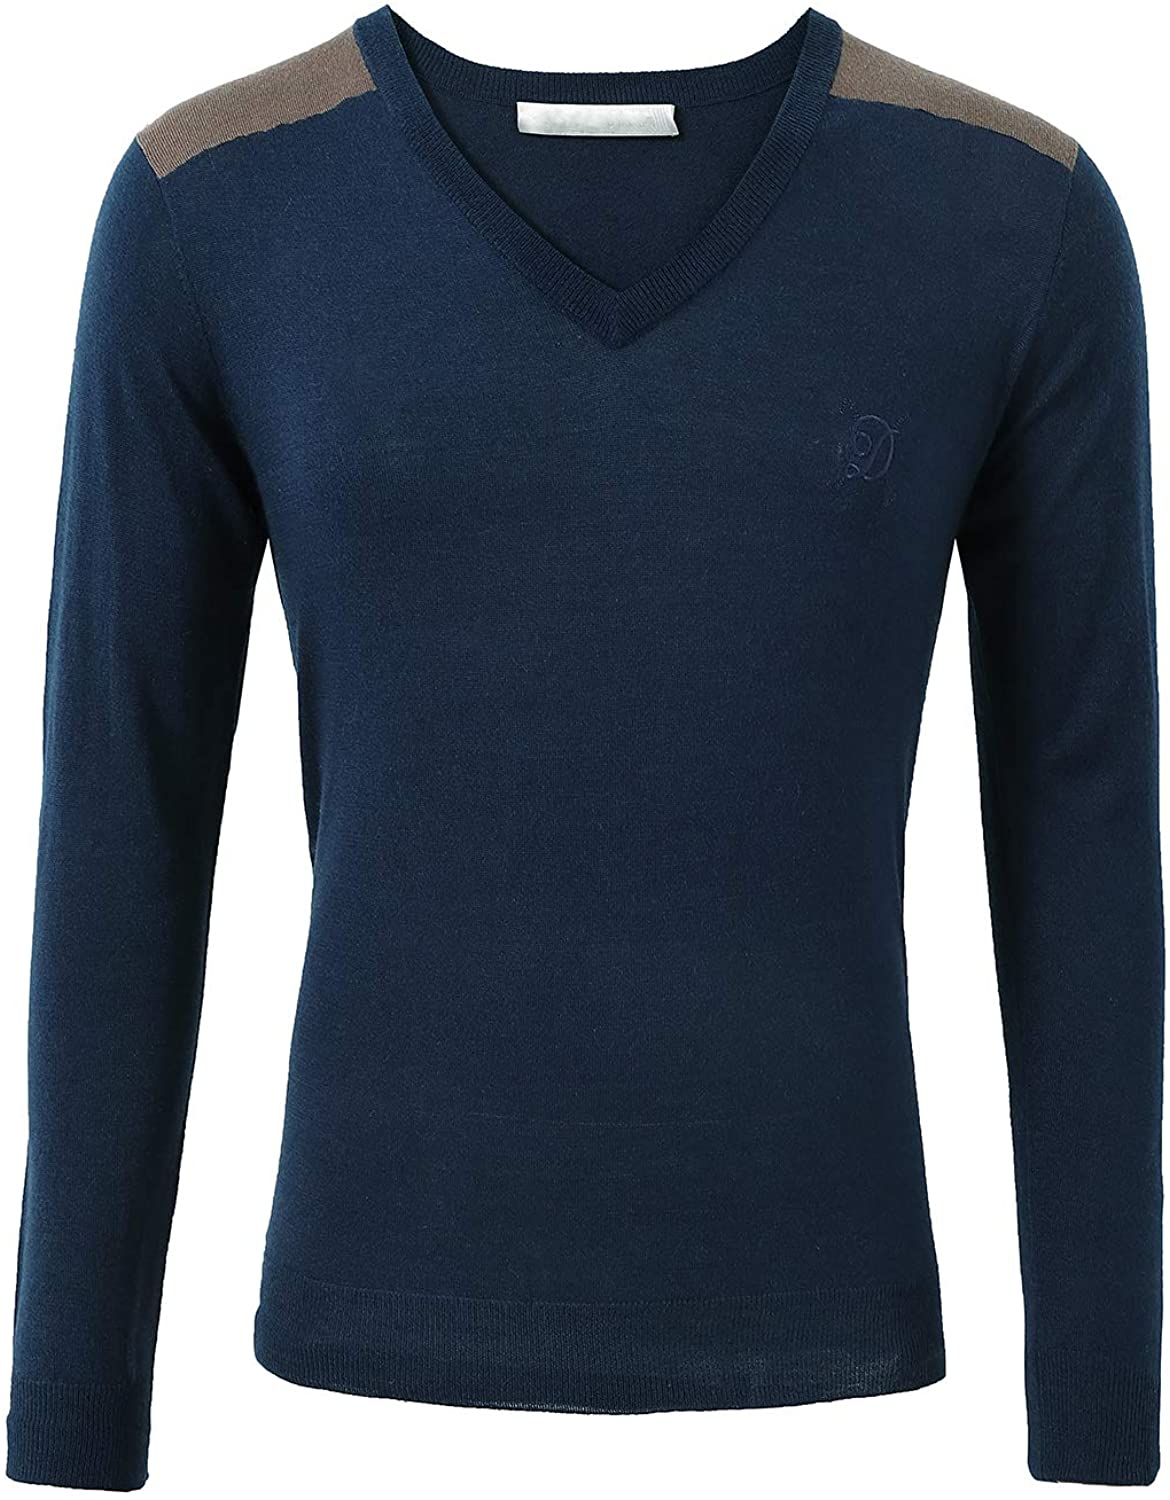 Escalier Men's Casual Pullover Sweater Slim Fit Button Long Sleeve V Neck Sweaters